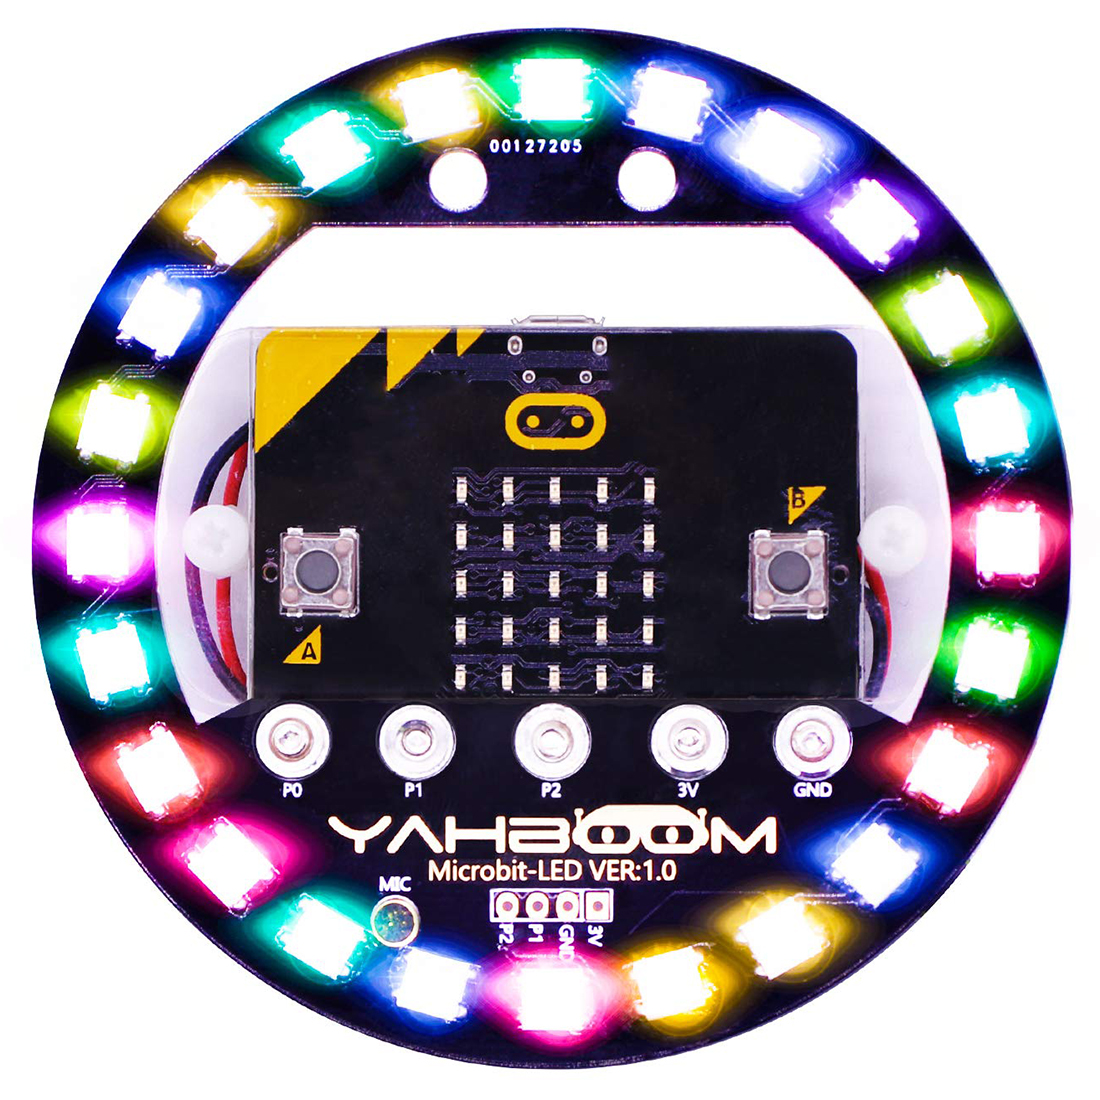 Micro:bit Halo Programmable Expansion Board Compatible With Arduino Voice Control Colorful LED RGB Lights (Without Micro:bit )